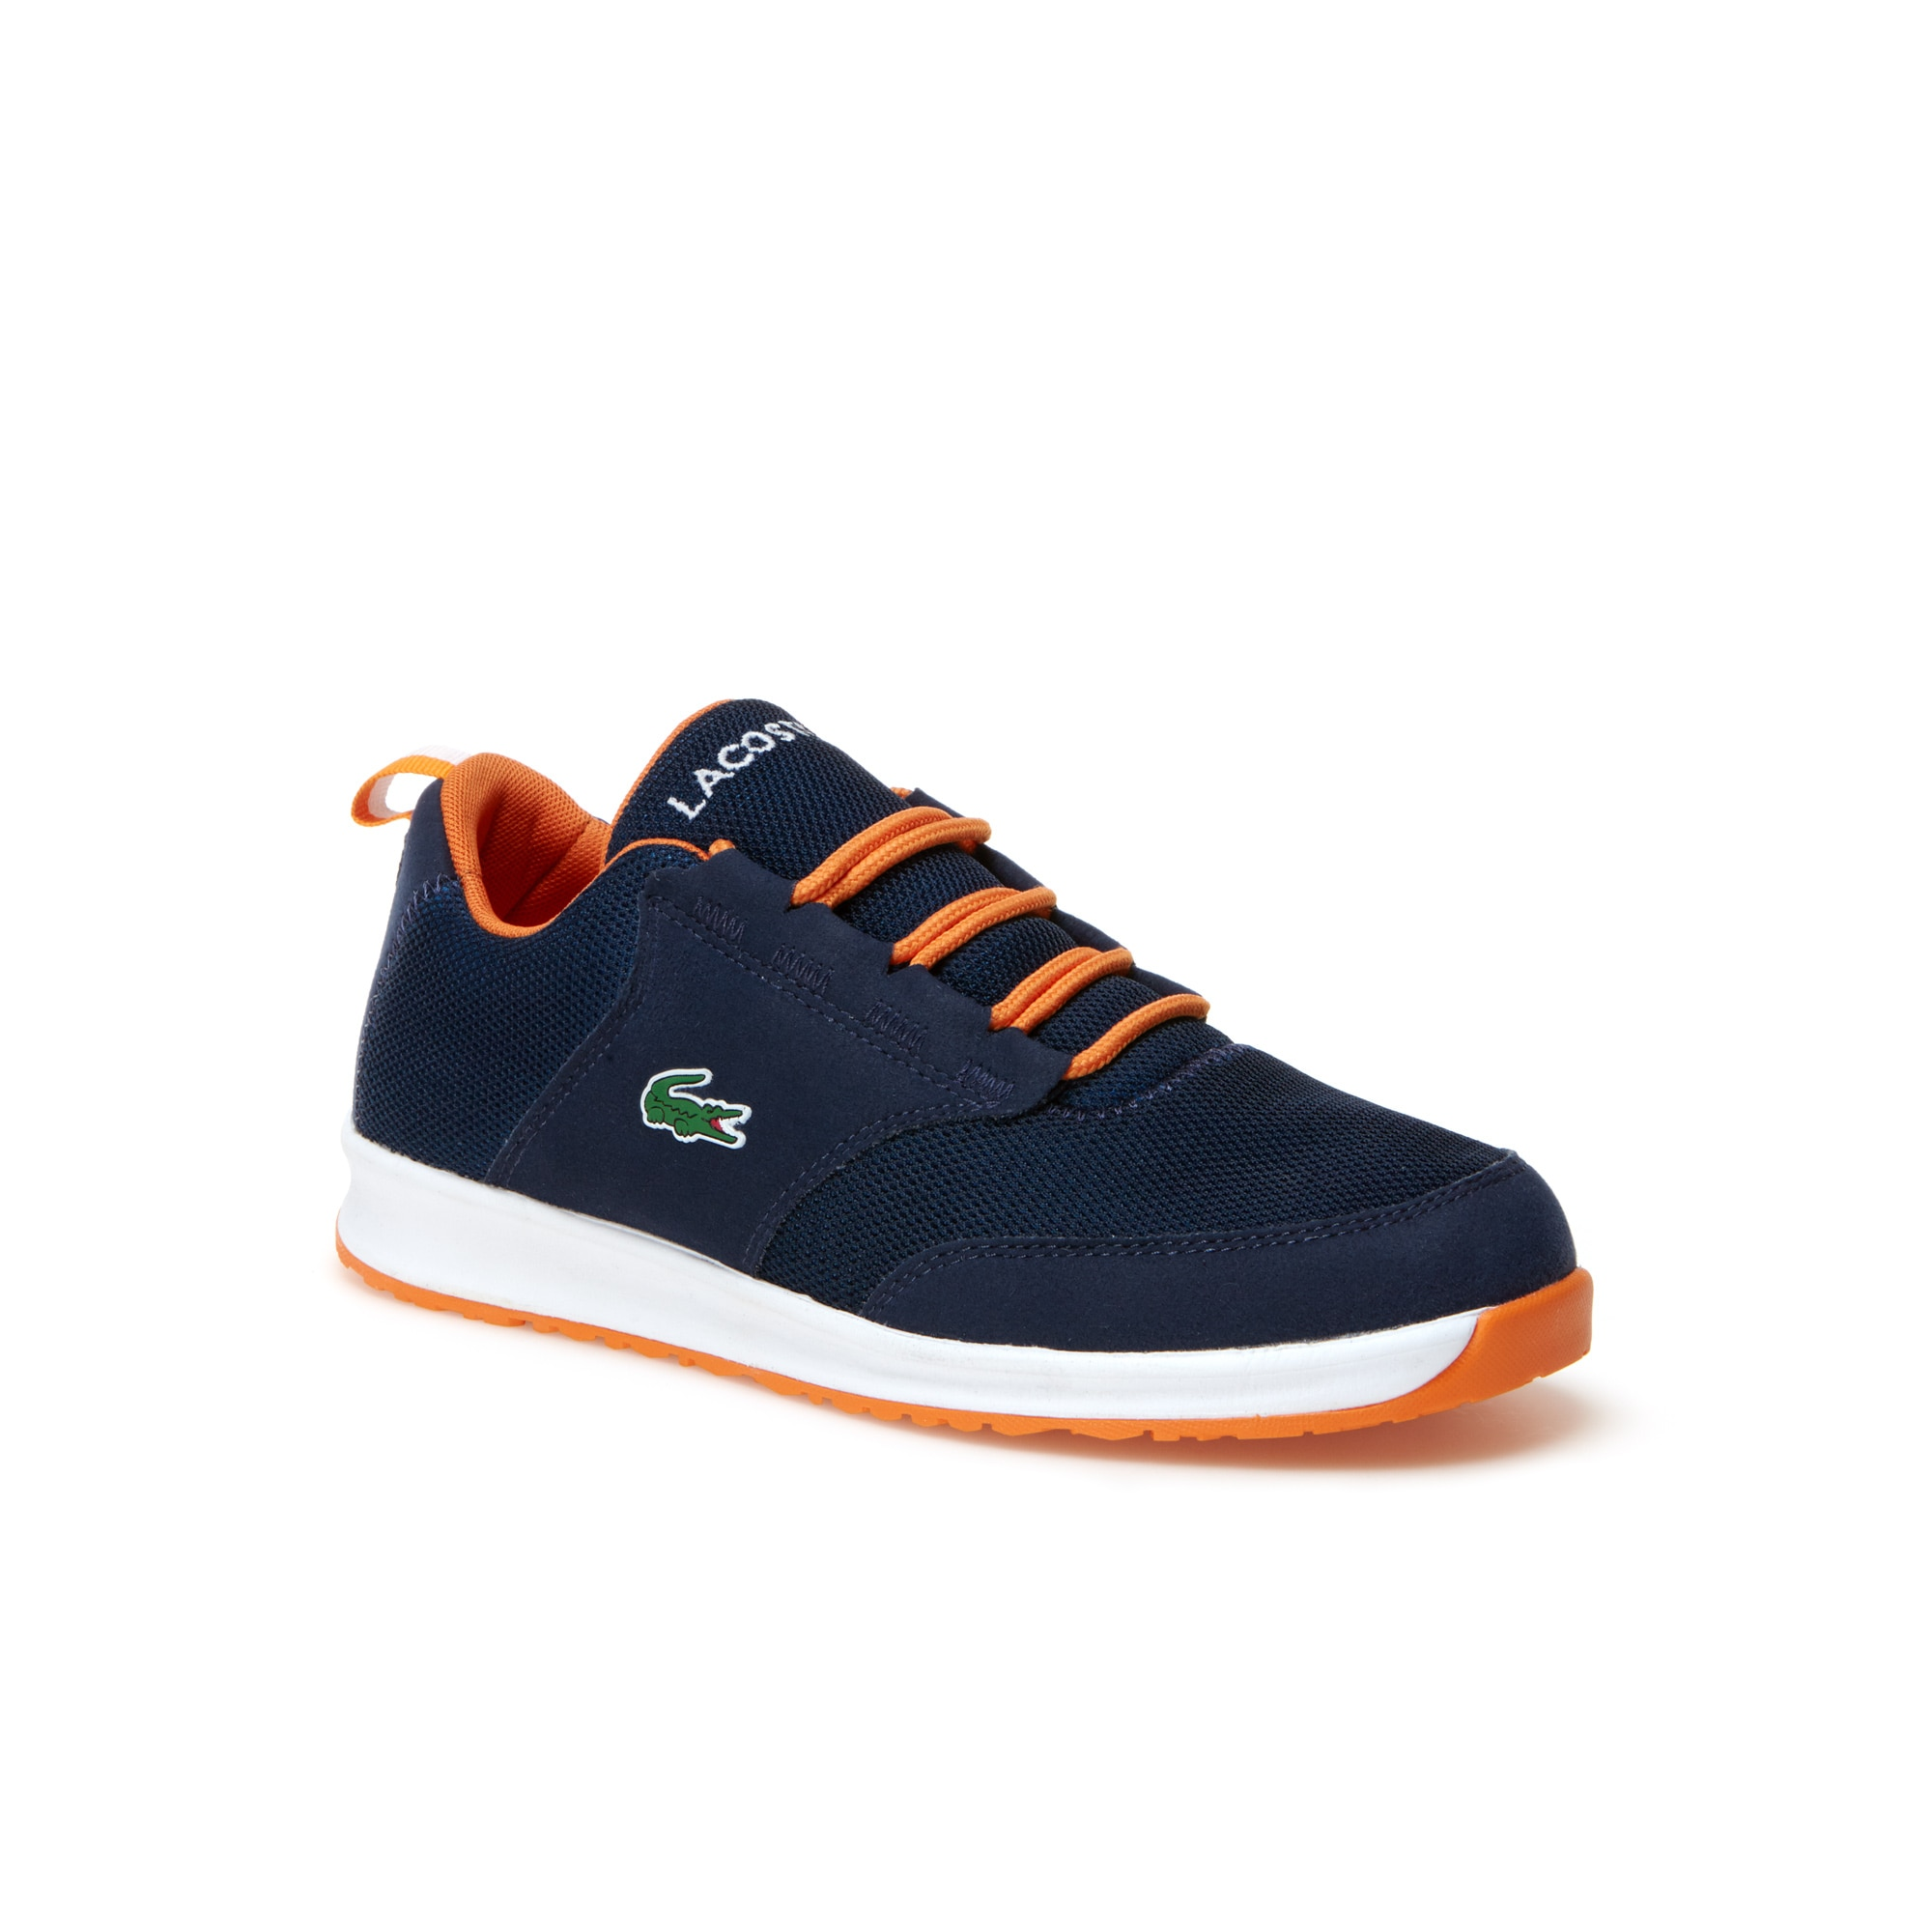 Kids' L.ight Textile Sneakers